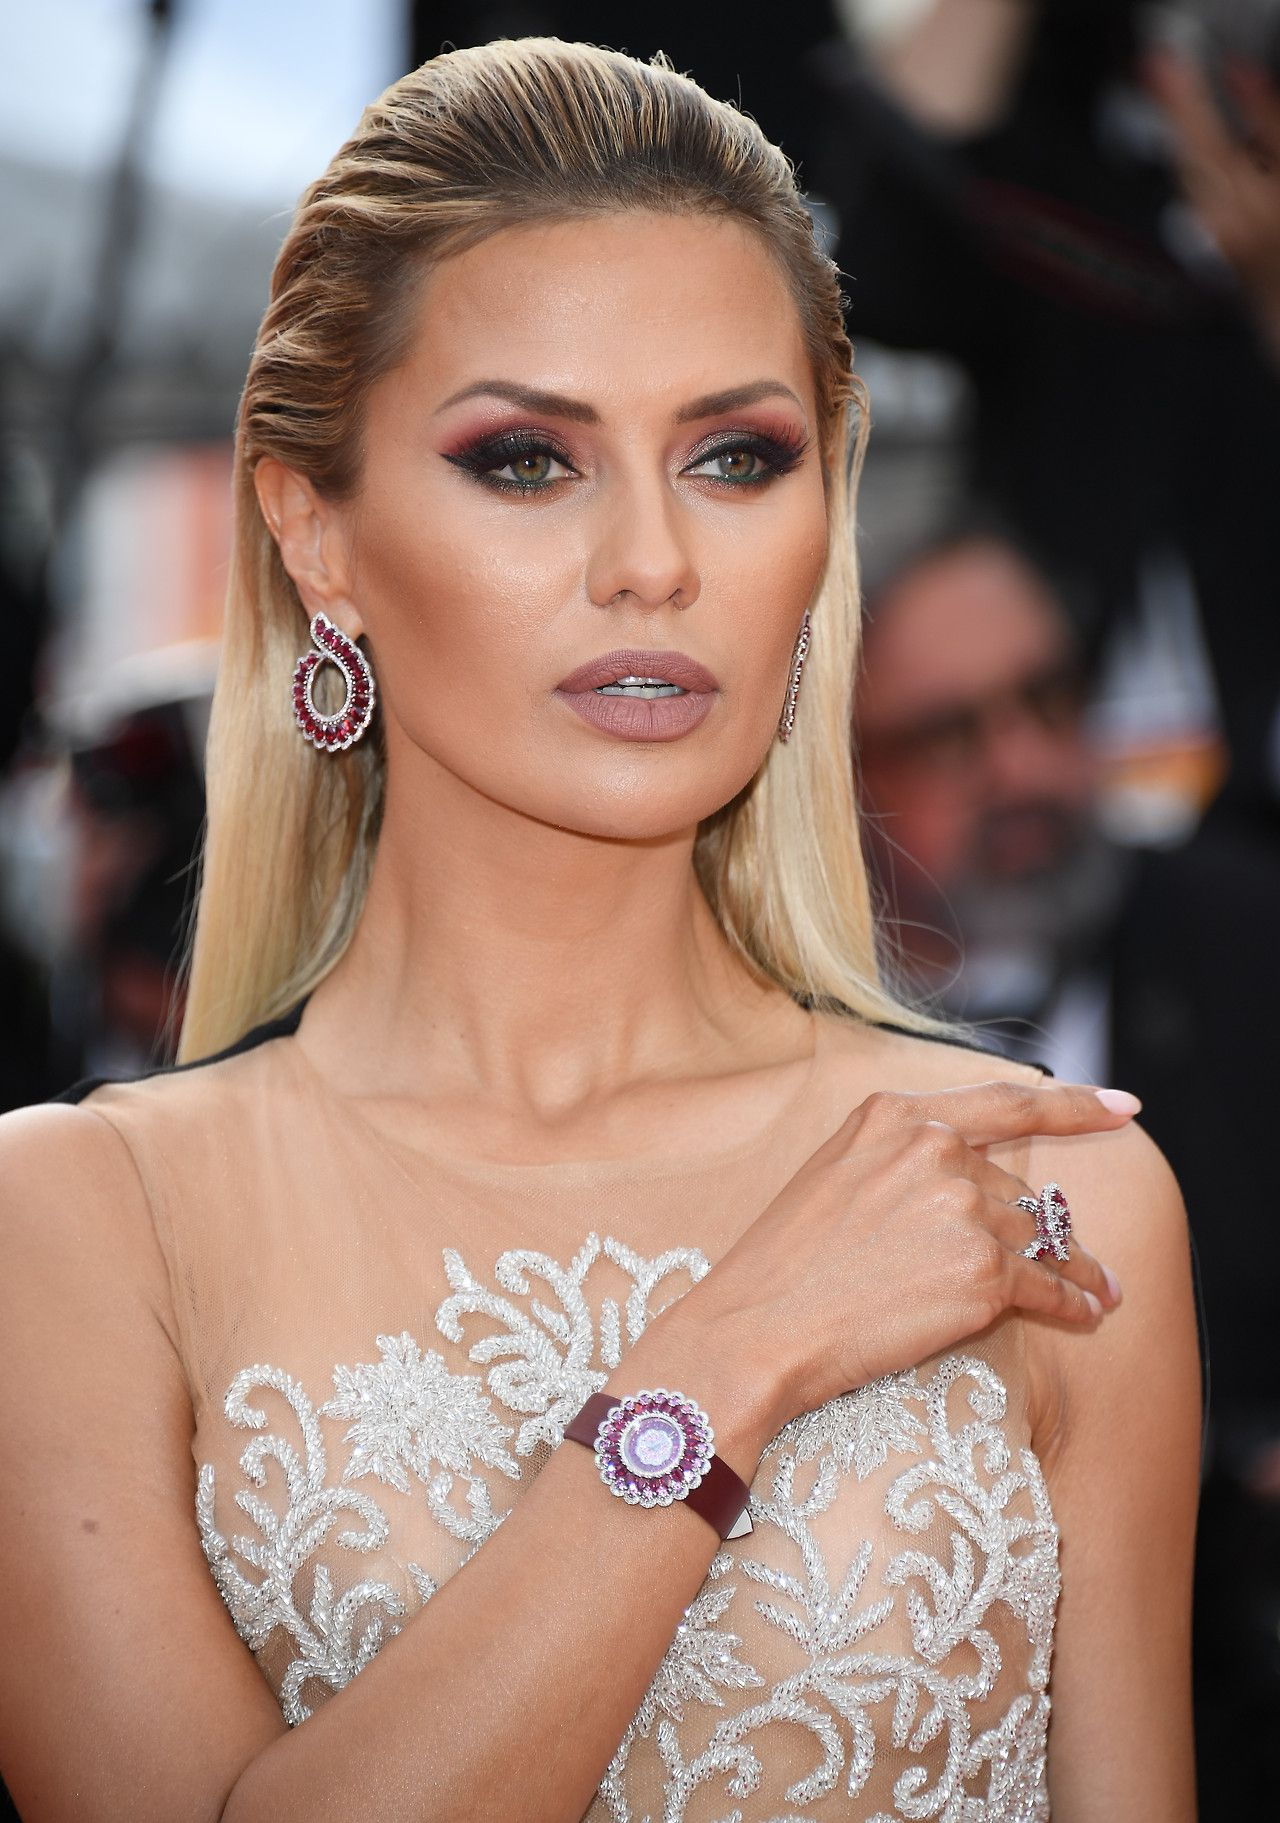 Victoria Bonya Stole The Spotlights Wearing Magnificient Emeralds Earrings Signed By Chopard On Red Carpet